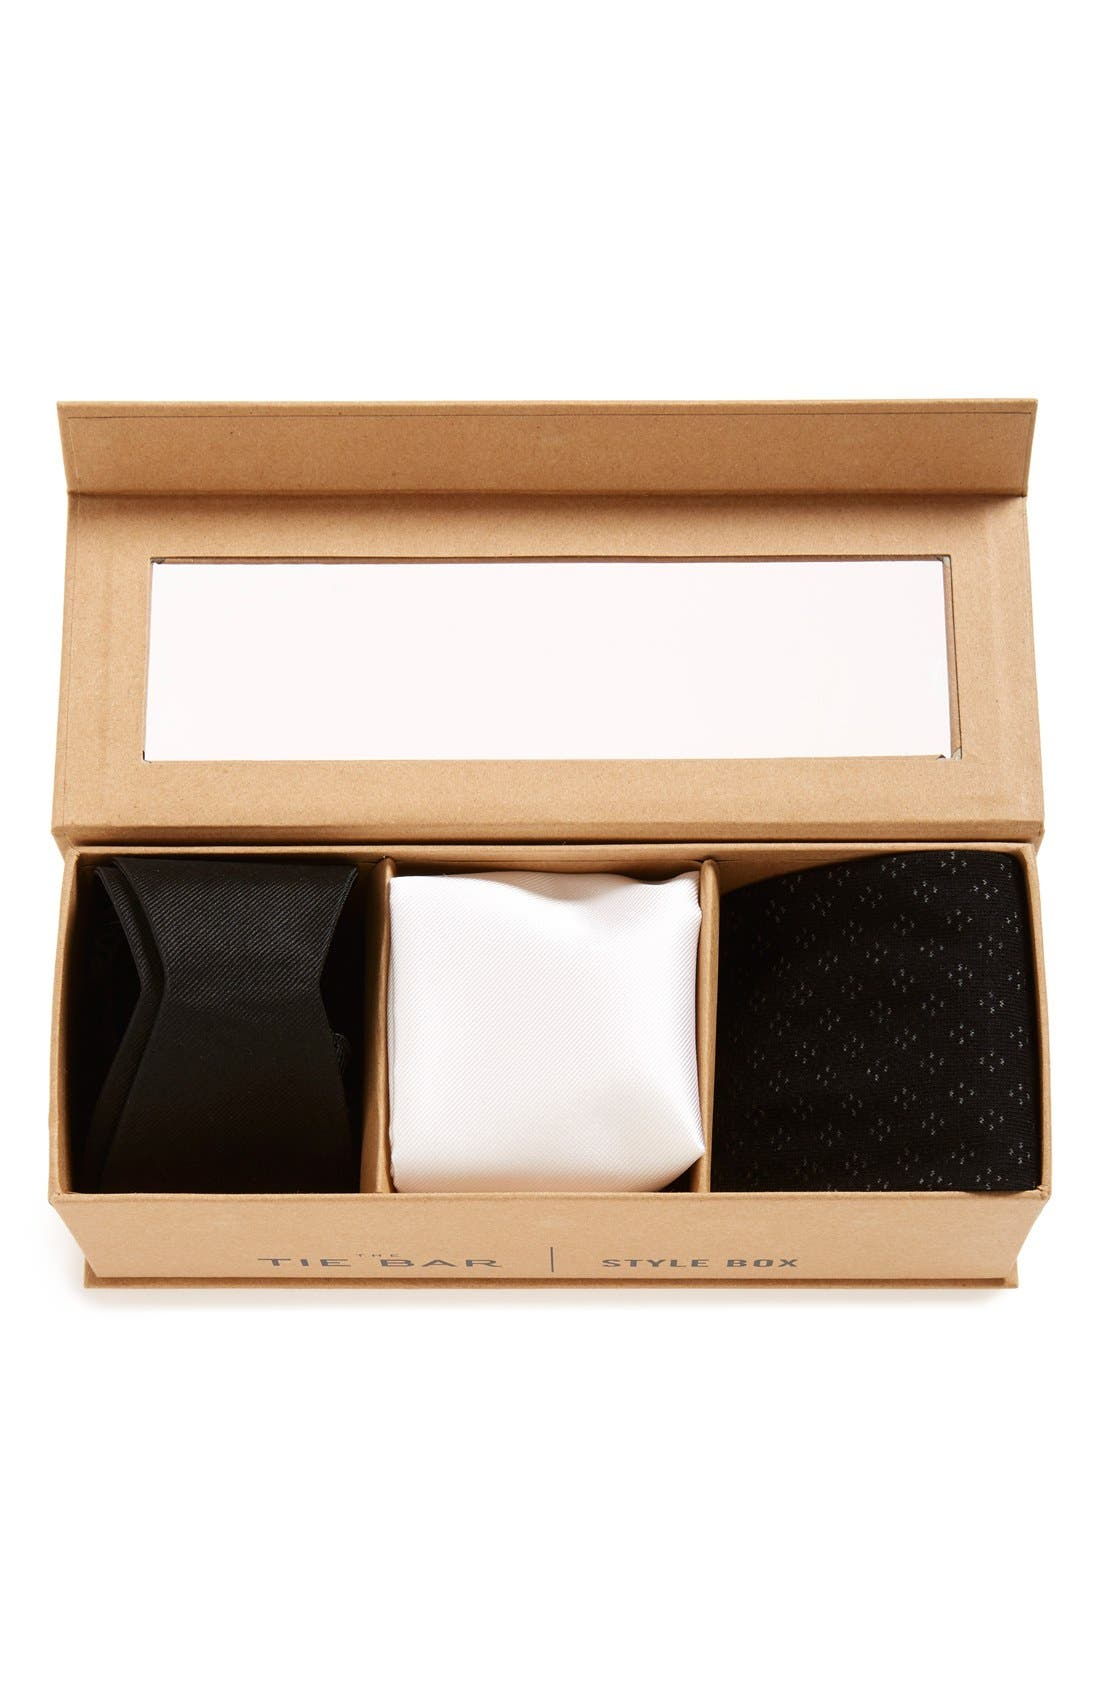 The Tie Bar Small Style Box (Nordstrom Exclusive)